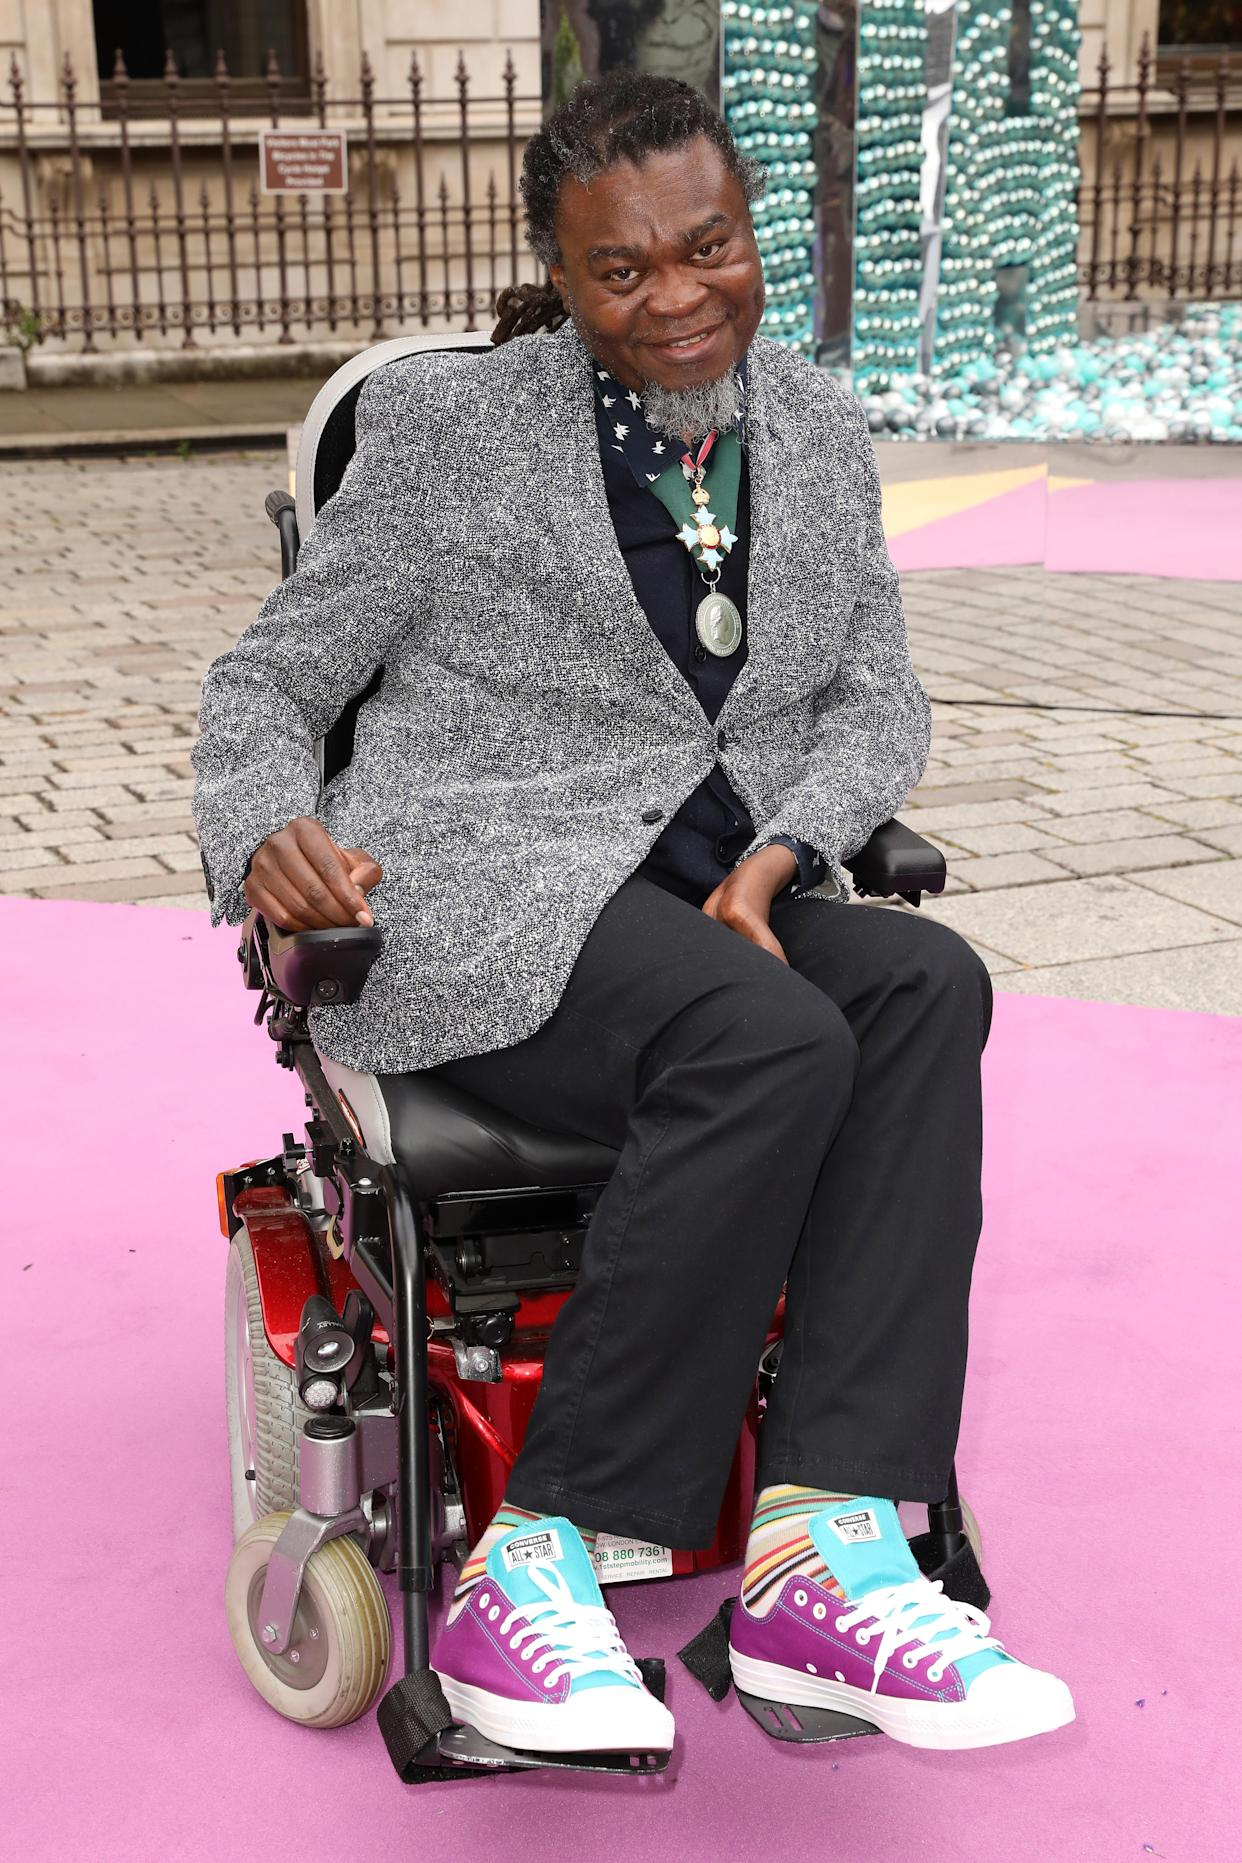 Artist Yinka Shonibare is also a backer. (Photo by Darren Gerrish/WireImage for The Royal Academy of Arts)